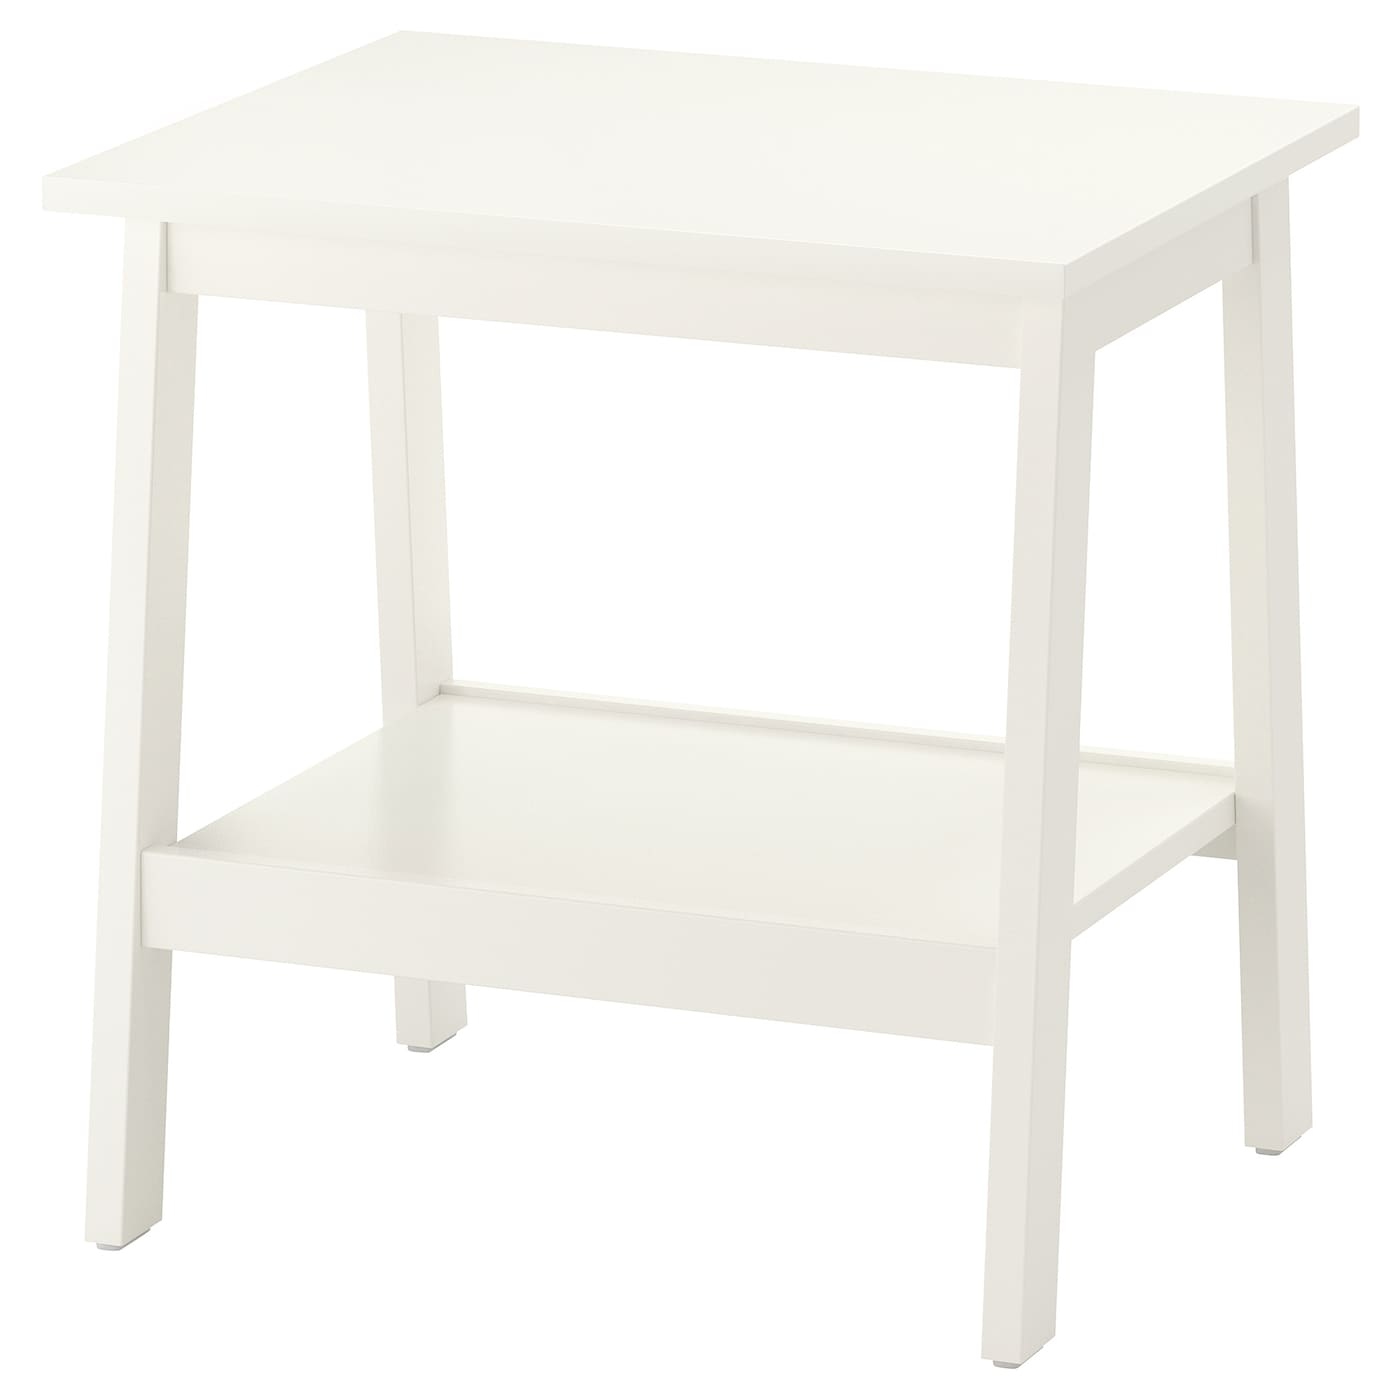 IKEA LUNNARP side table Neutral design that is easy to combine and complement.